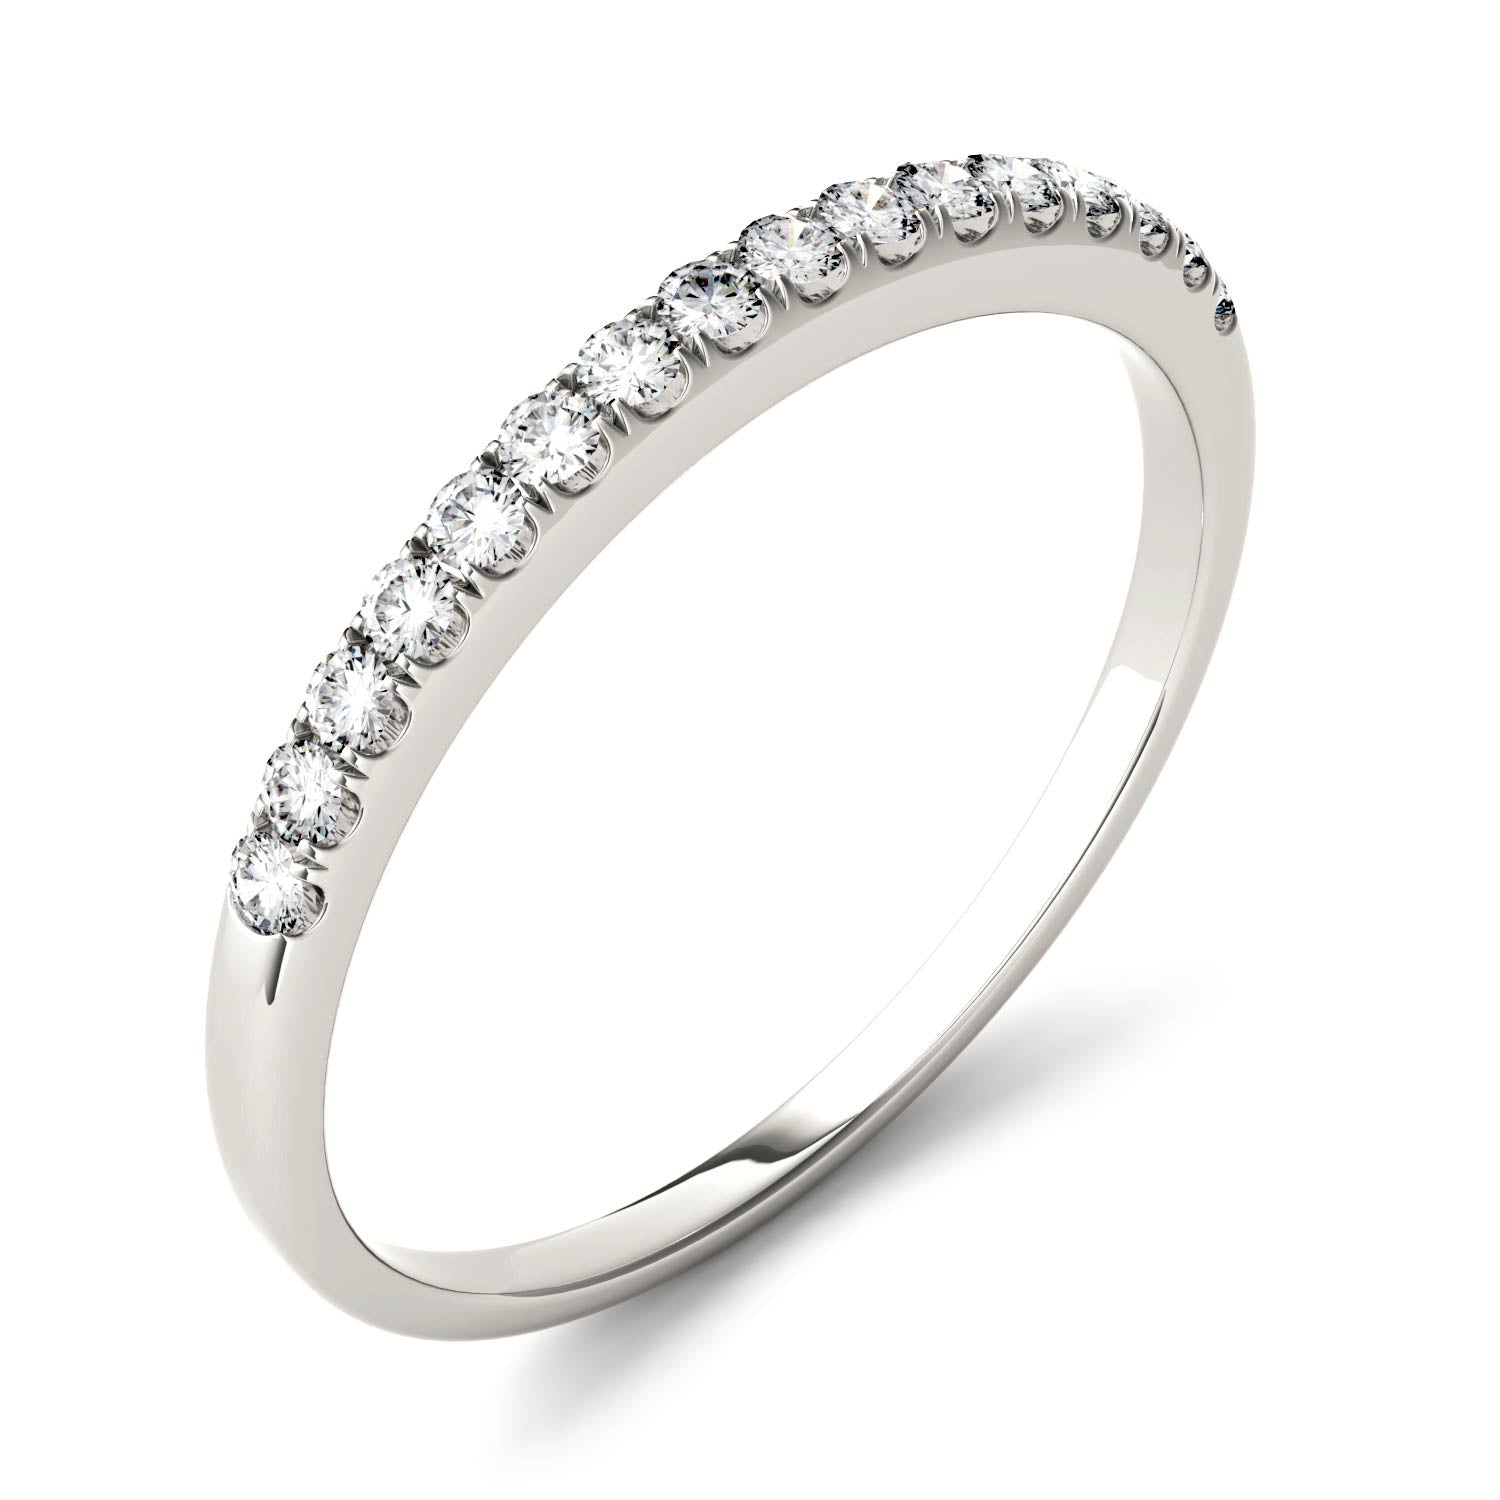 Charles & Colvard Moissanite Women's Half Eternity Wedding Band - Jewelry by Johan